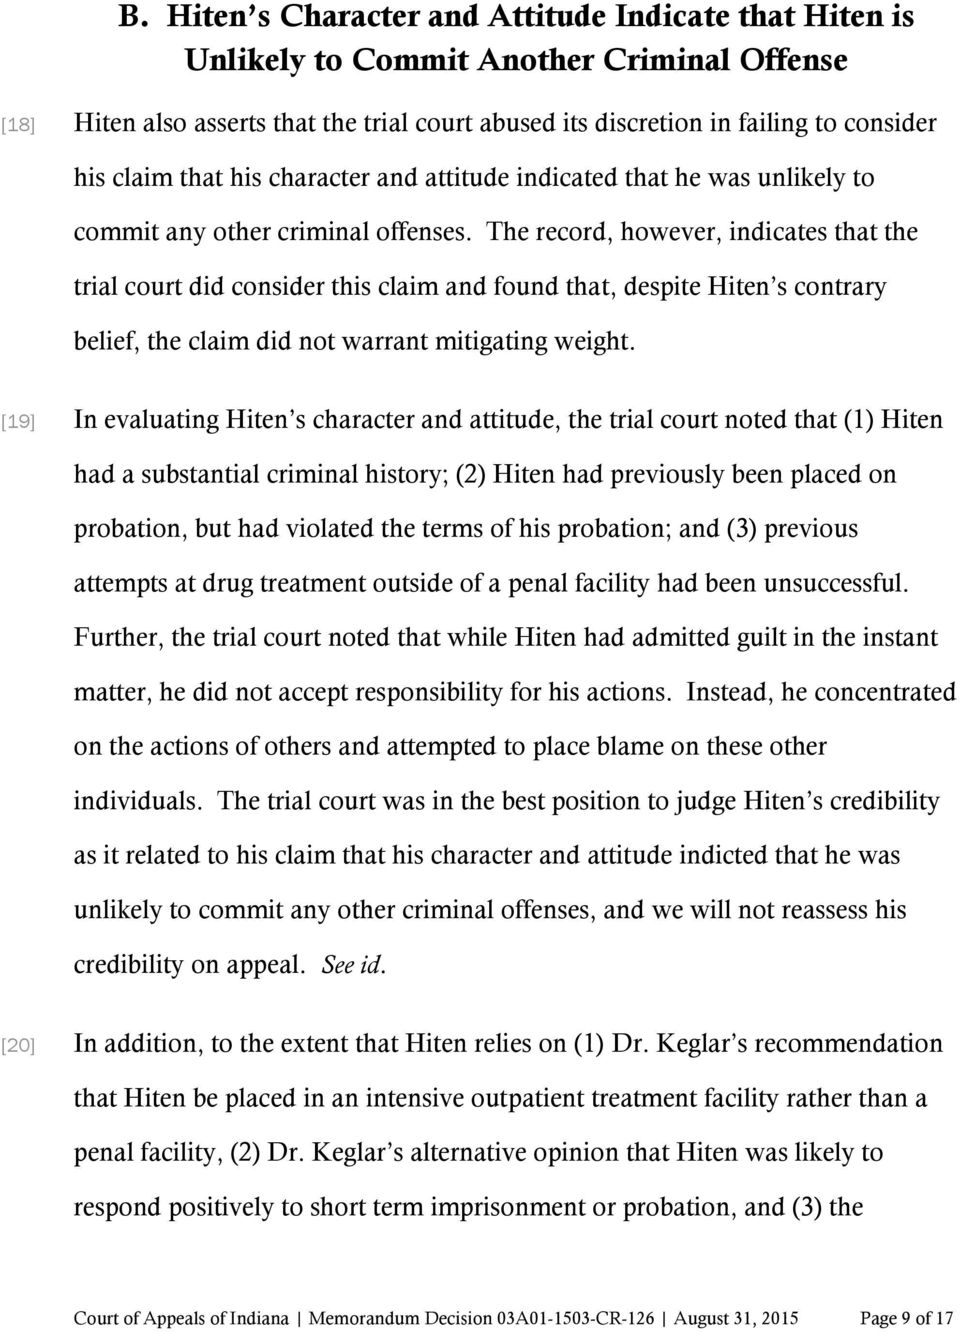 The record, however, indicates that the trial court did consider this claim and found that, despite Hiten s contrary belief, the claim did not warrant mitigating weight.